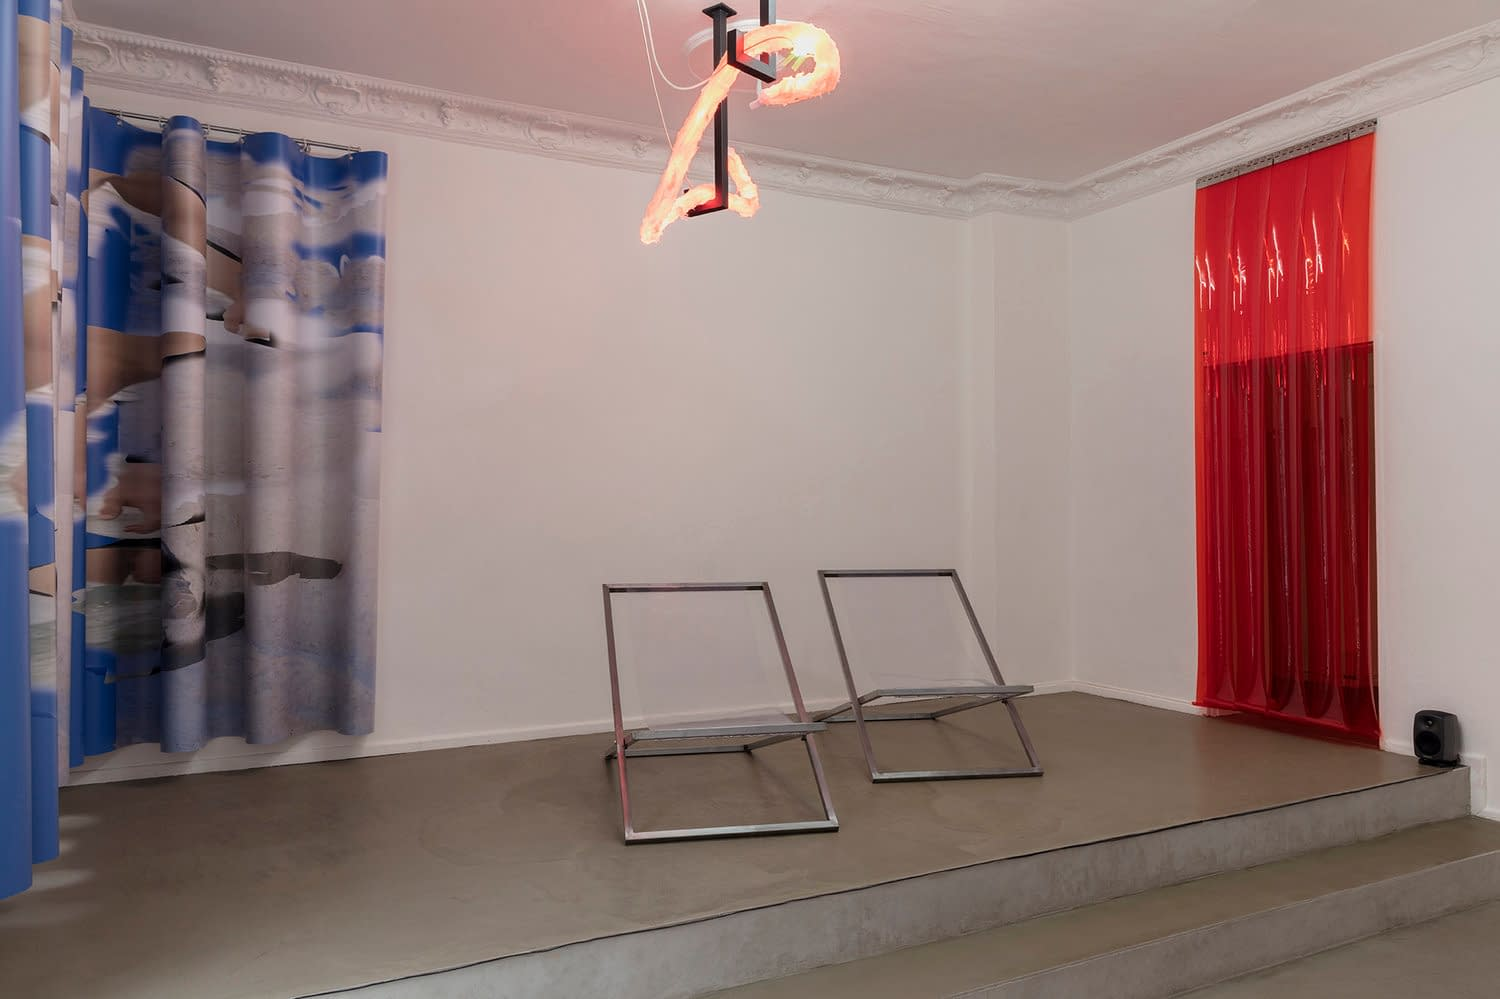 Polymeric Lust at Display, Berlin